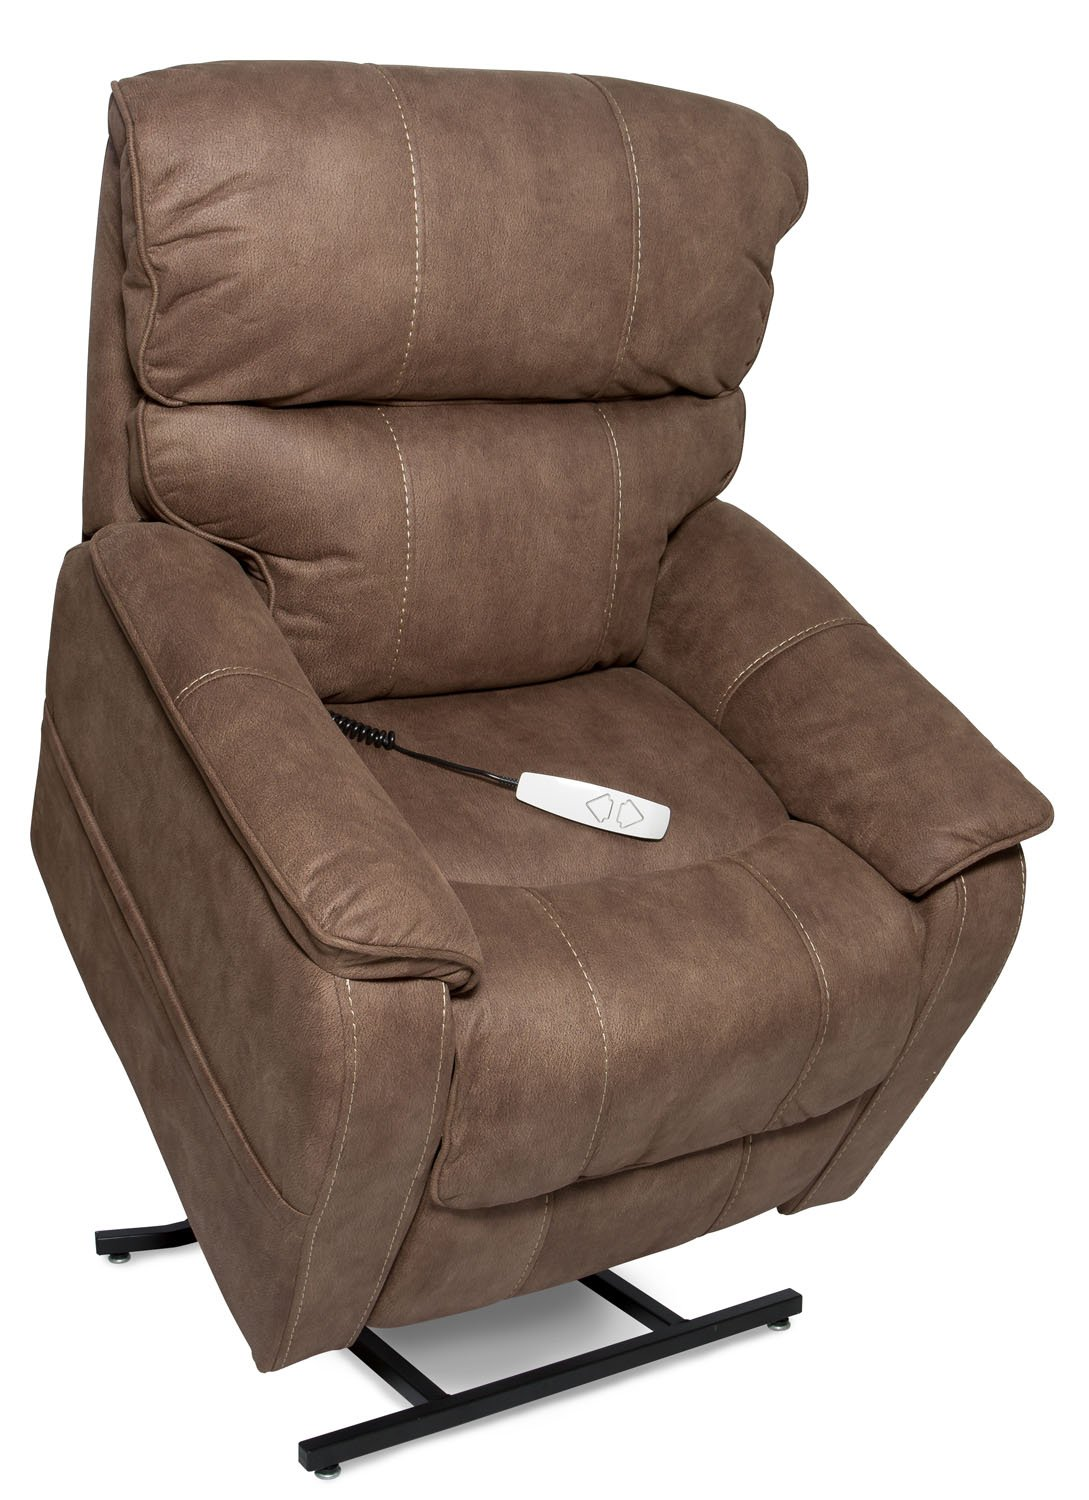 Windermere NM-2250 3-Position Lift Chair Recliner - Saddle